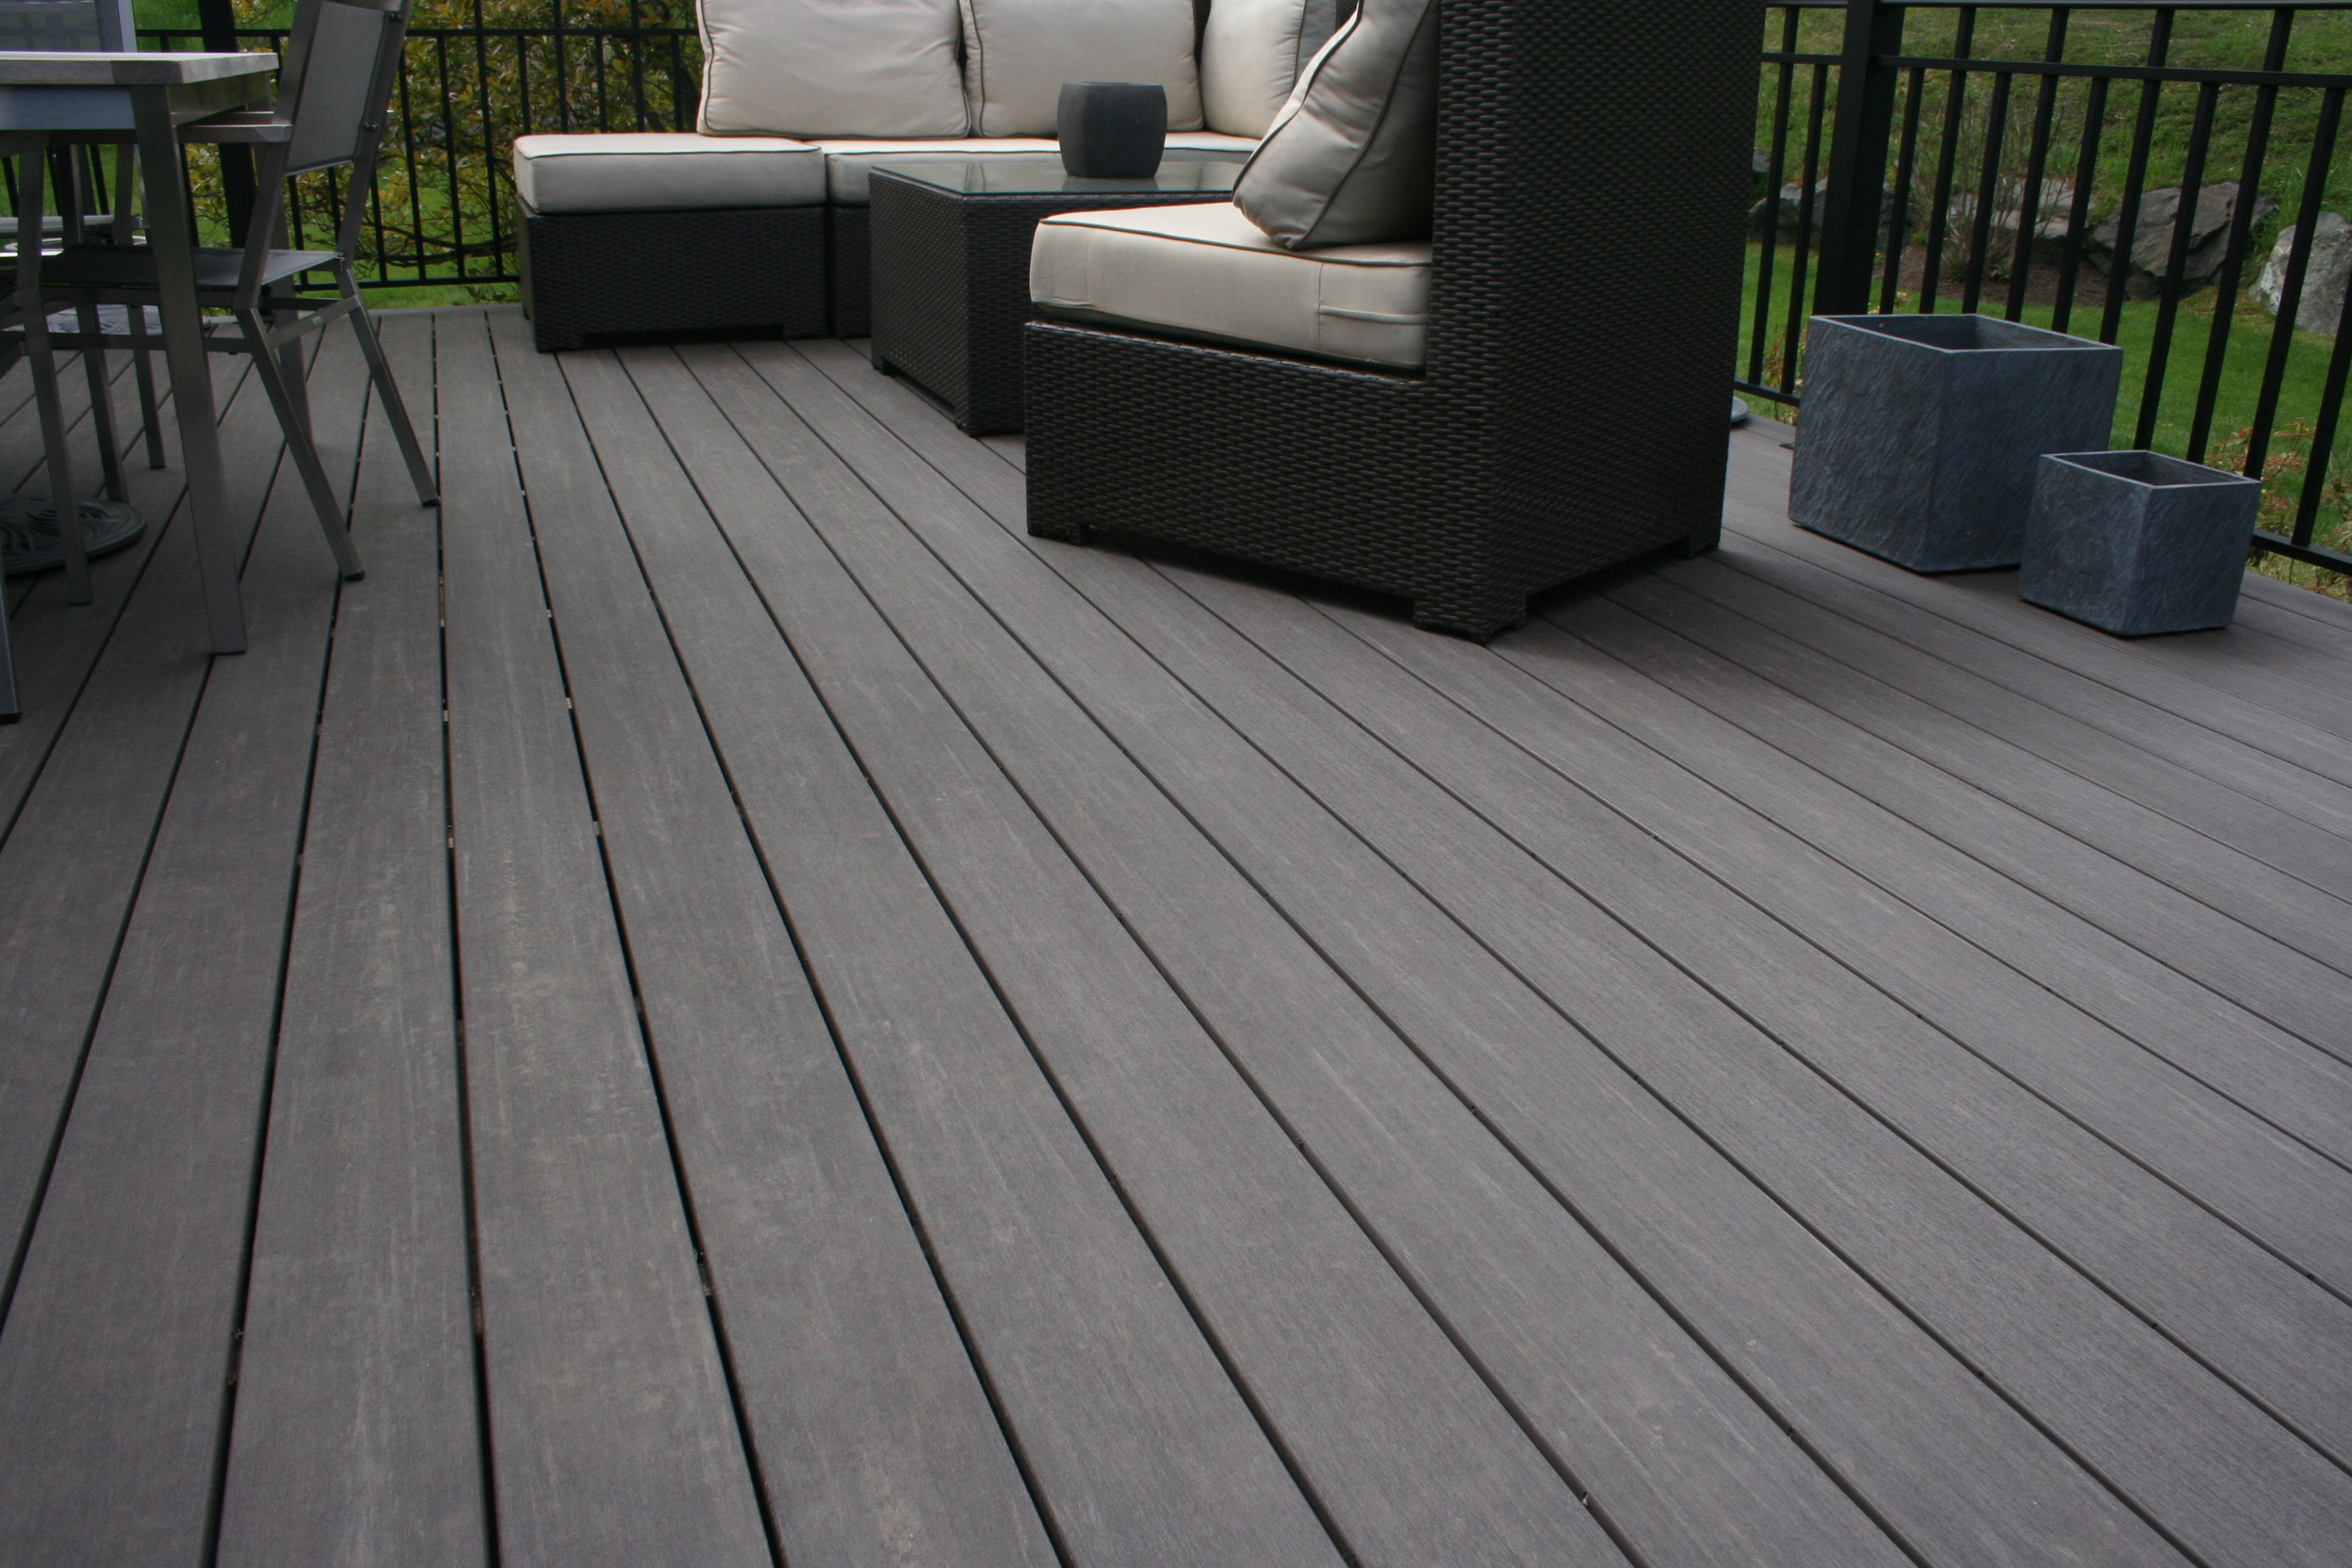 my deck llc selects camo edge fastening and azek the latest